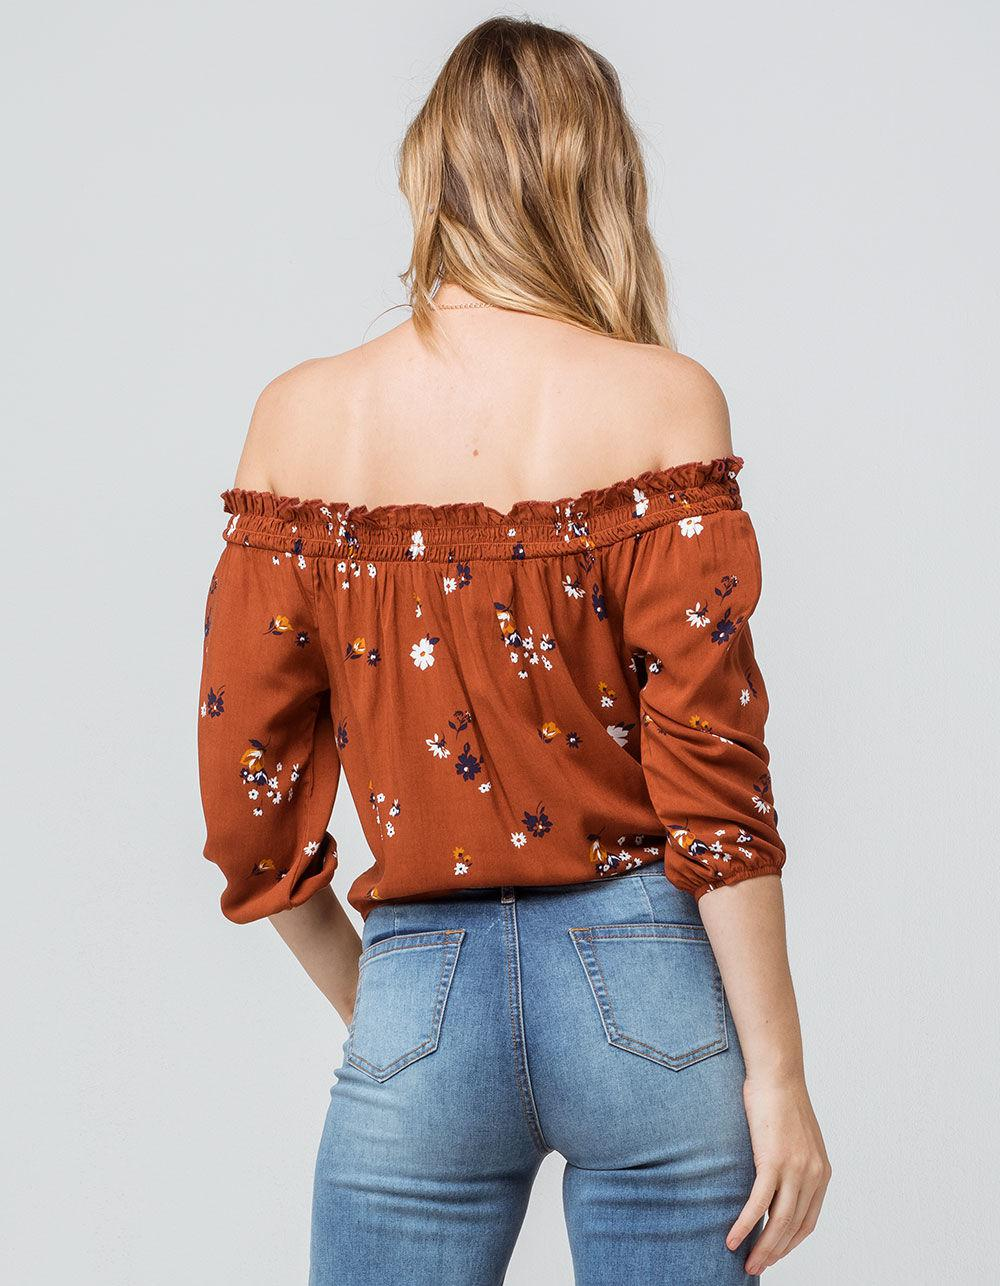 92c8964052777 Mimi Chica - Multicolor Floral Tie Front Rust Womens Off The Shoulder Top -  Lyst. View fullscreen